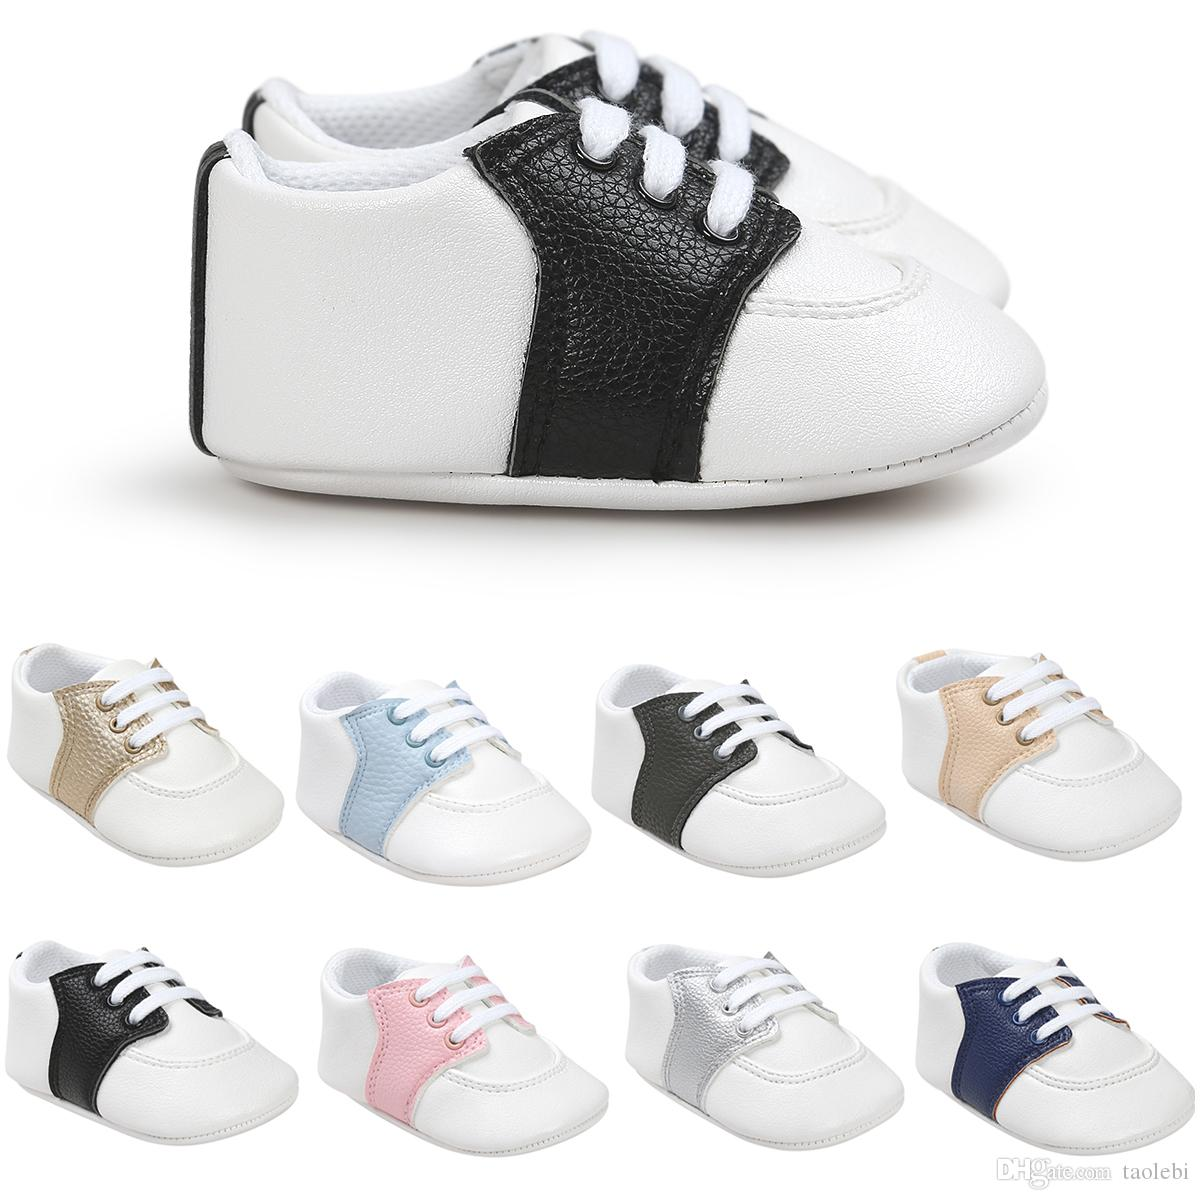 325d9e54f5616 Can Mix Colors And SizesHot Sale PU Leather Baby Sneakers Baby ...